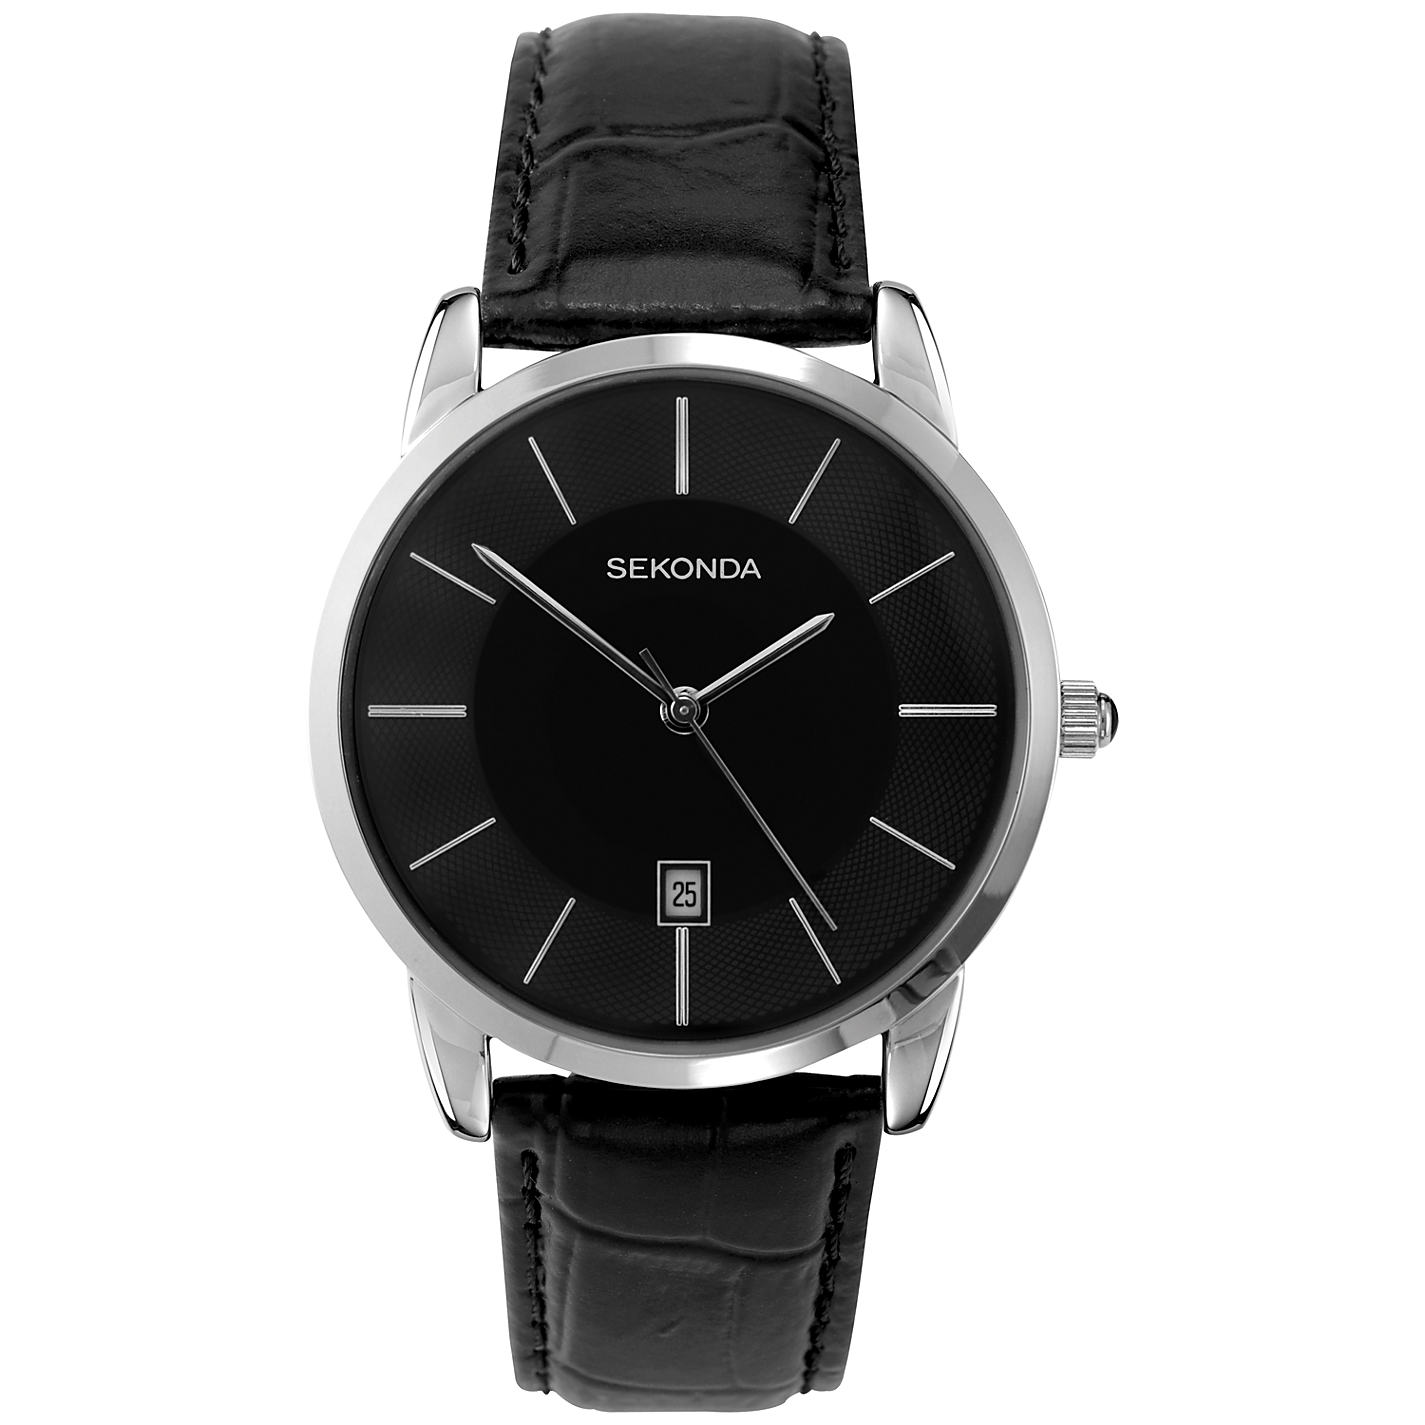 Sekonda Men's Quartz Watch with Black Dial Analogue Display and Black Leather Strap 3346.27